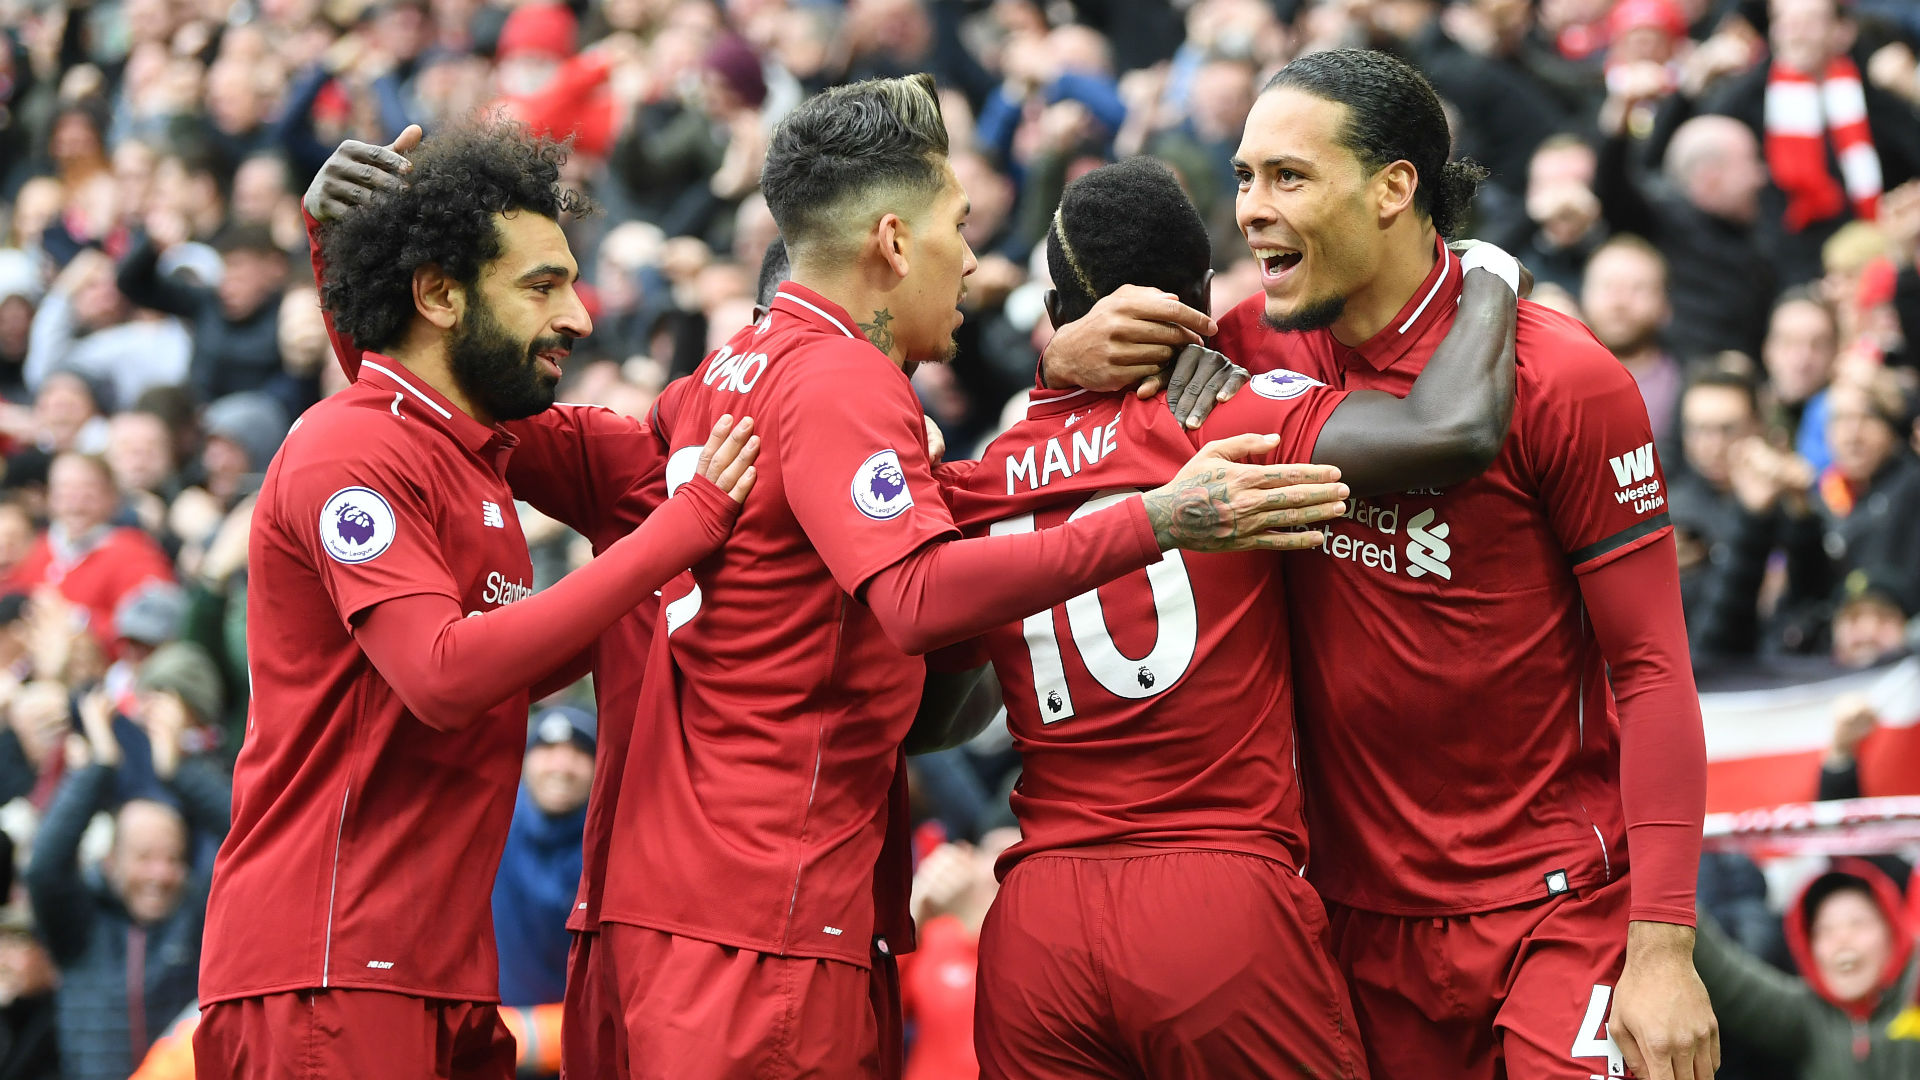 Salah, Firmino and Mane can't shine without Liverpool team-mates - Solari